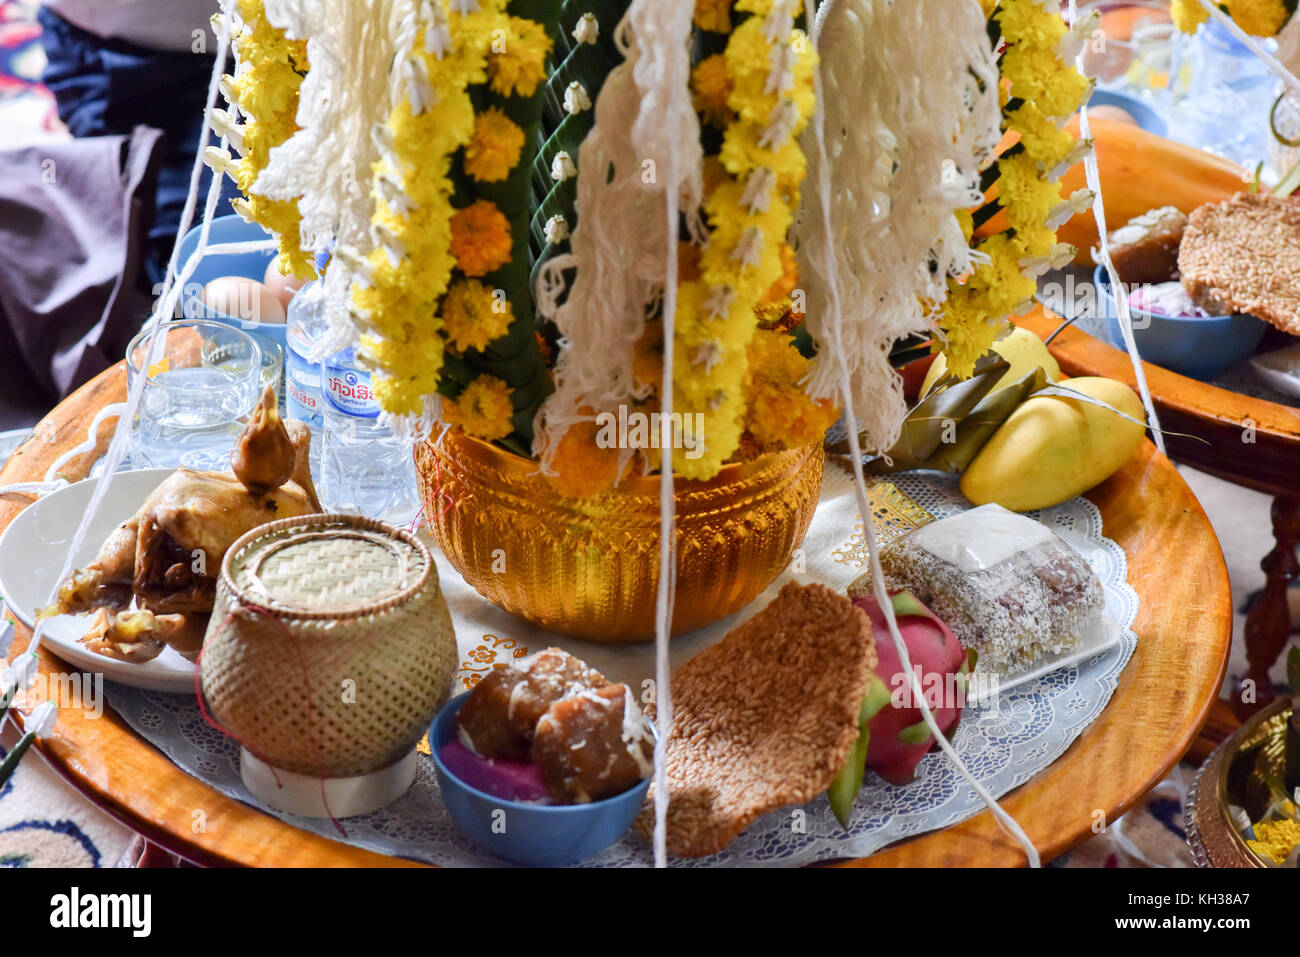 Offerings to the Gods , traditional Buddhist wedding Laos - Stock Image